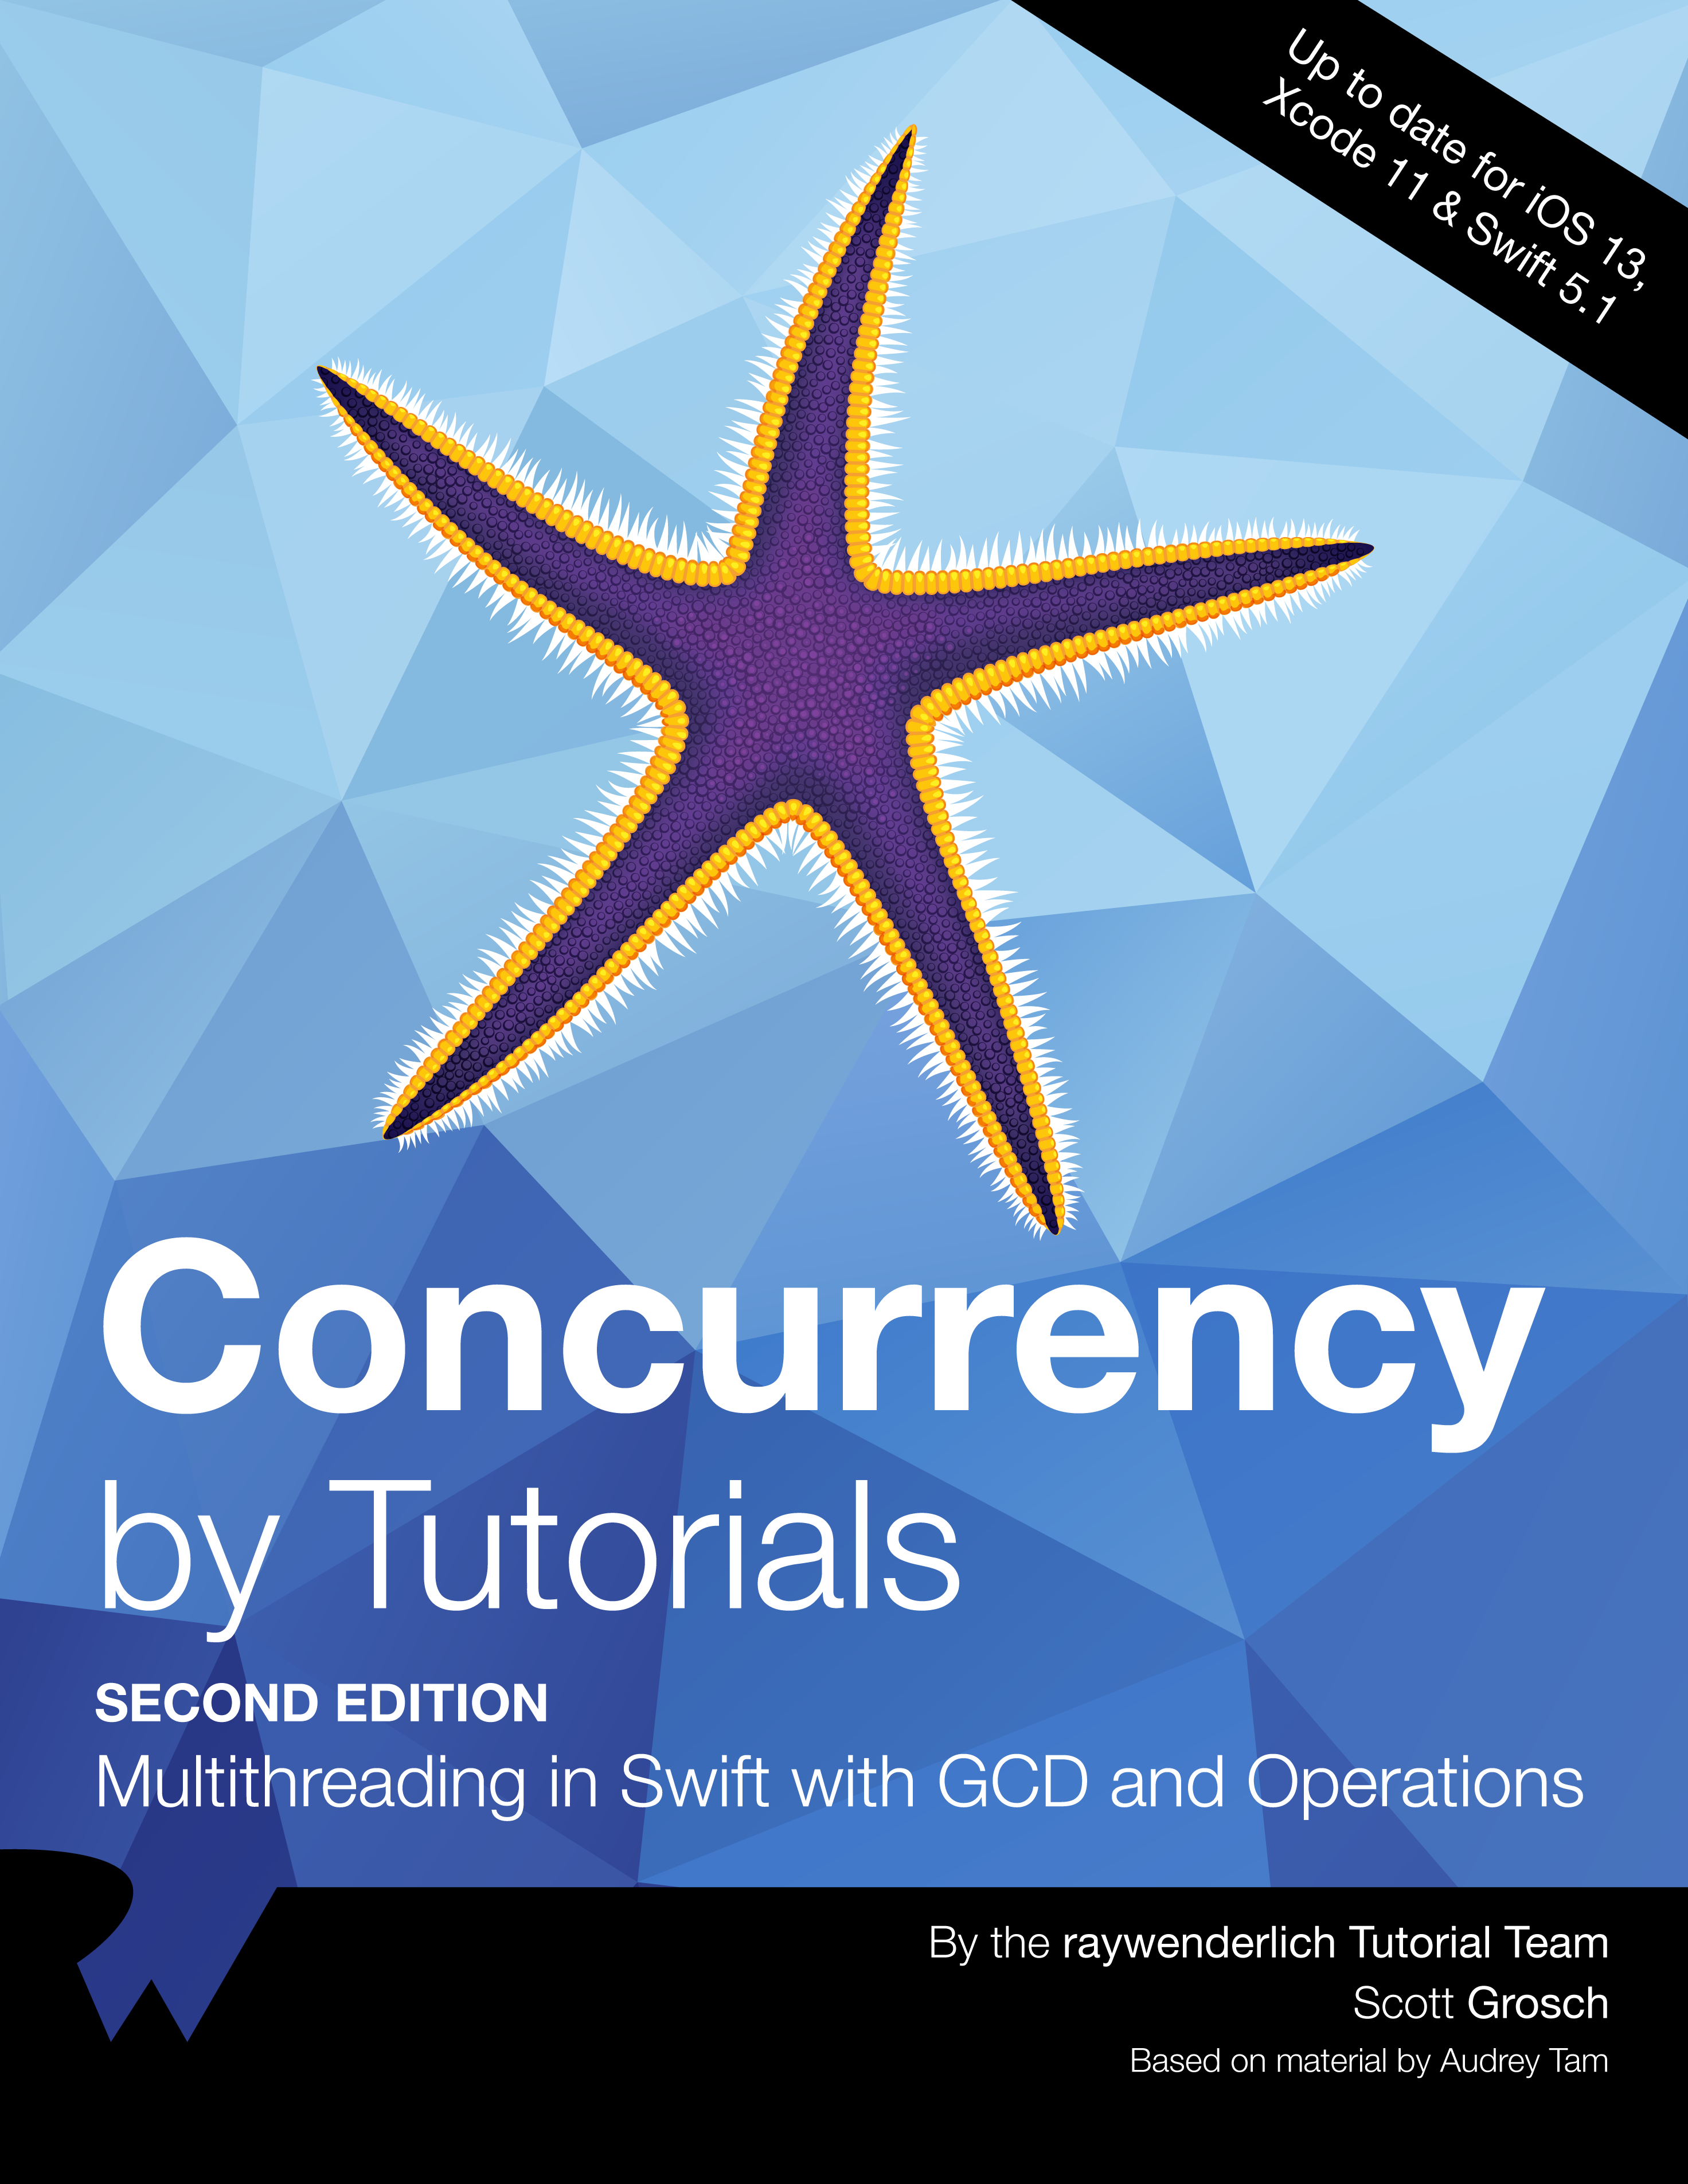 Concurrency by Tutorials